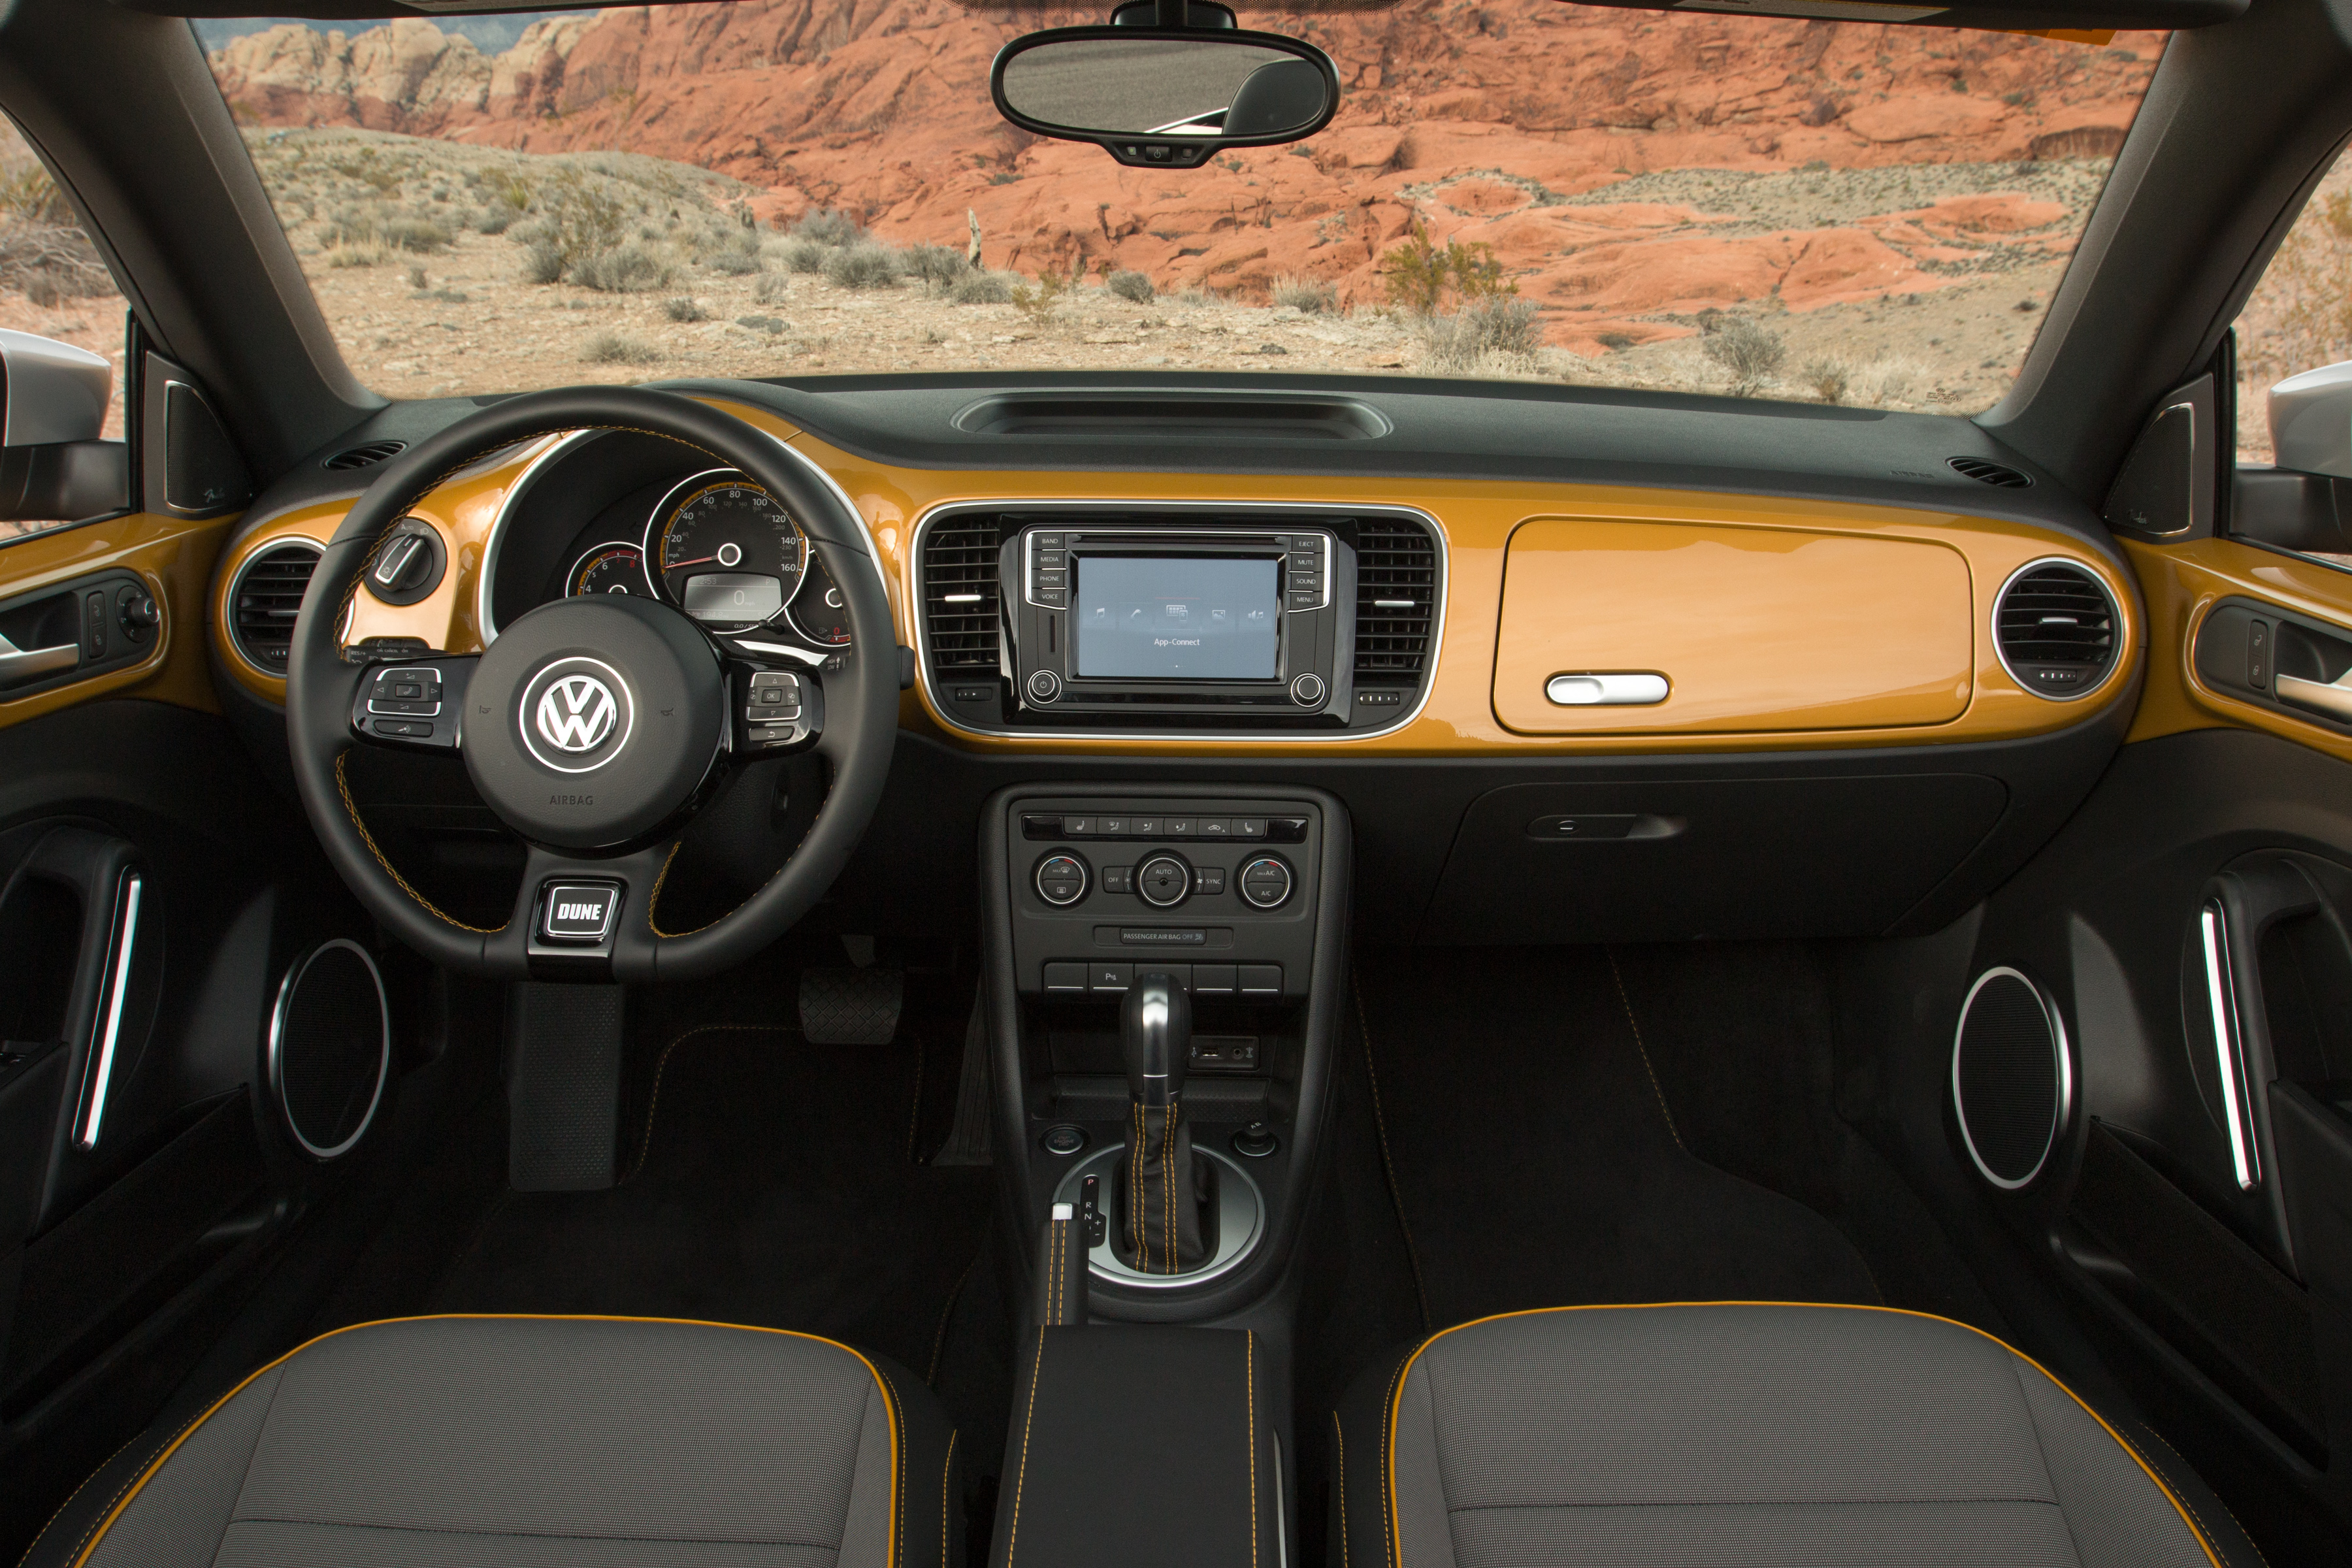 2016 VW Beetle Dune - Interior